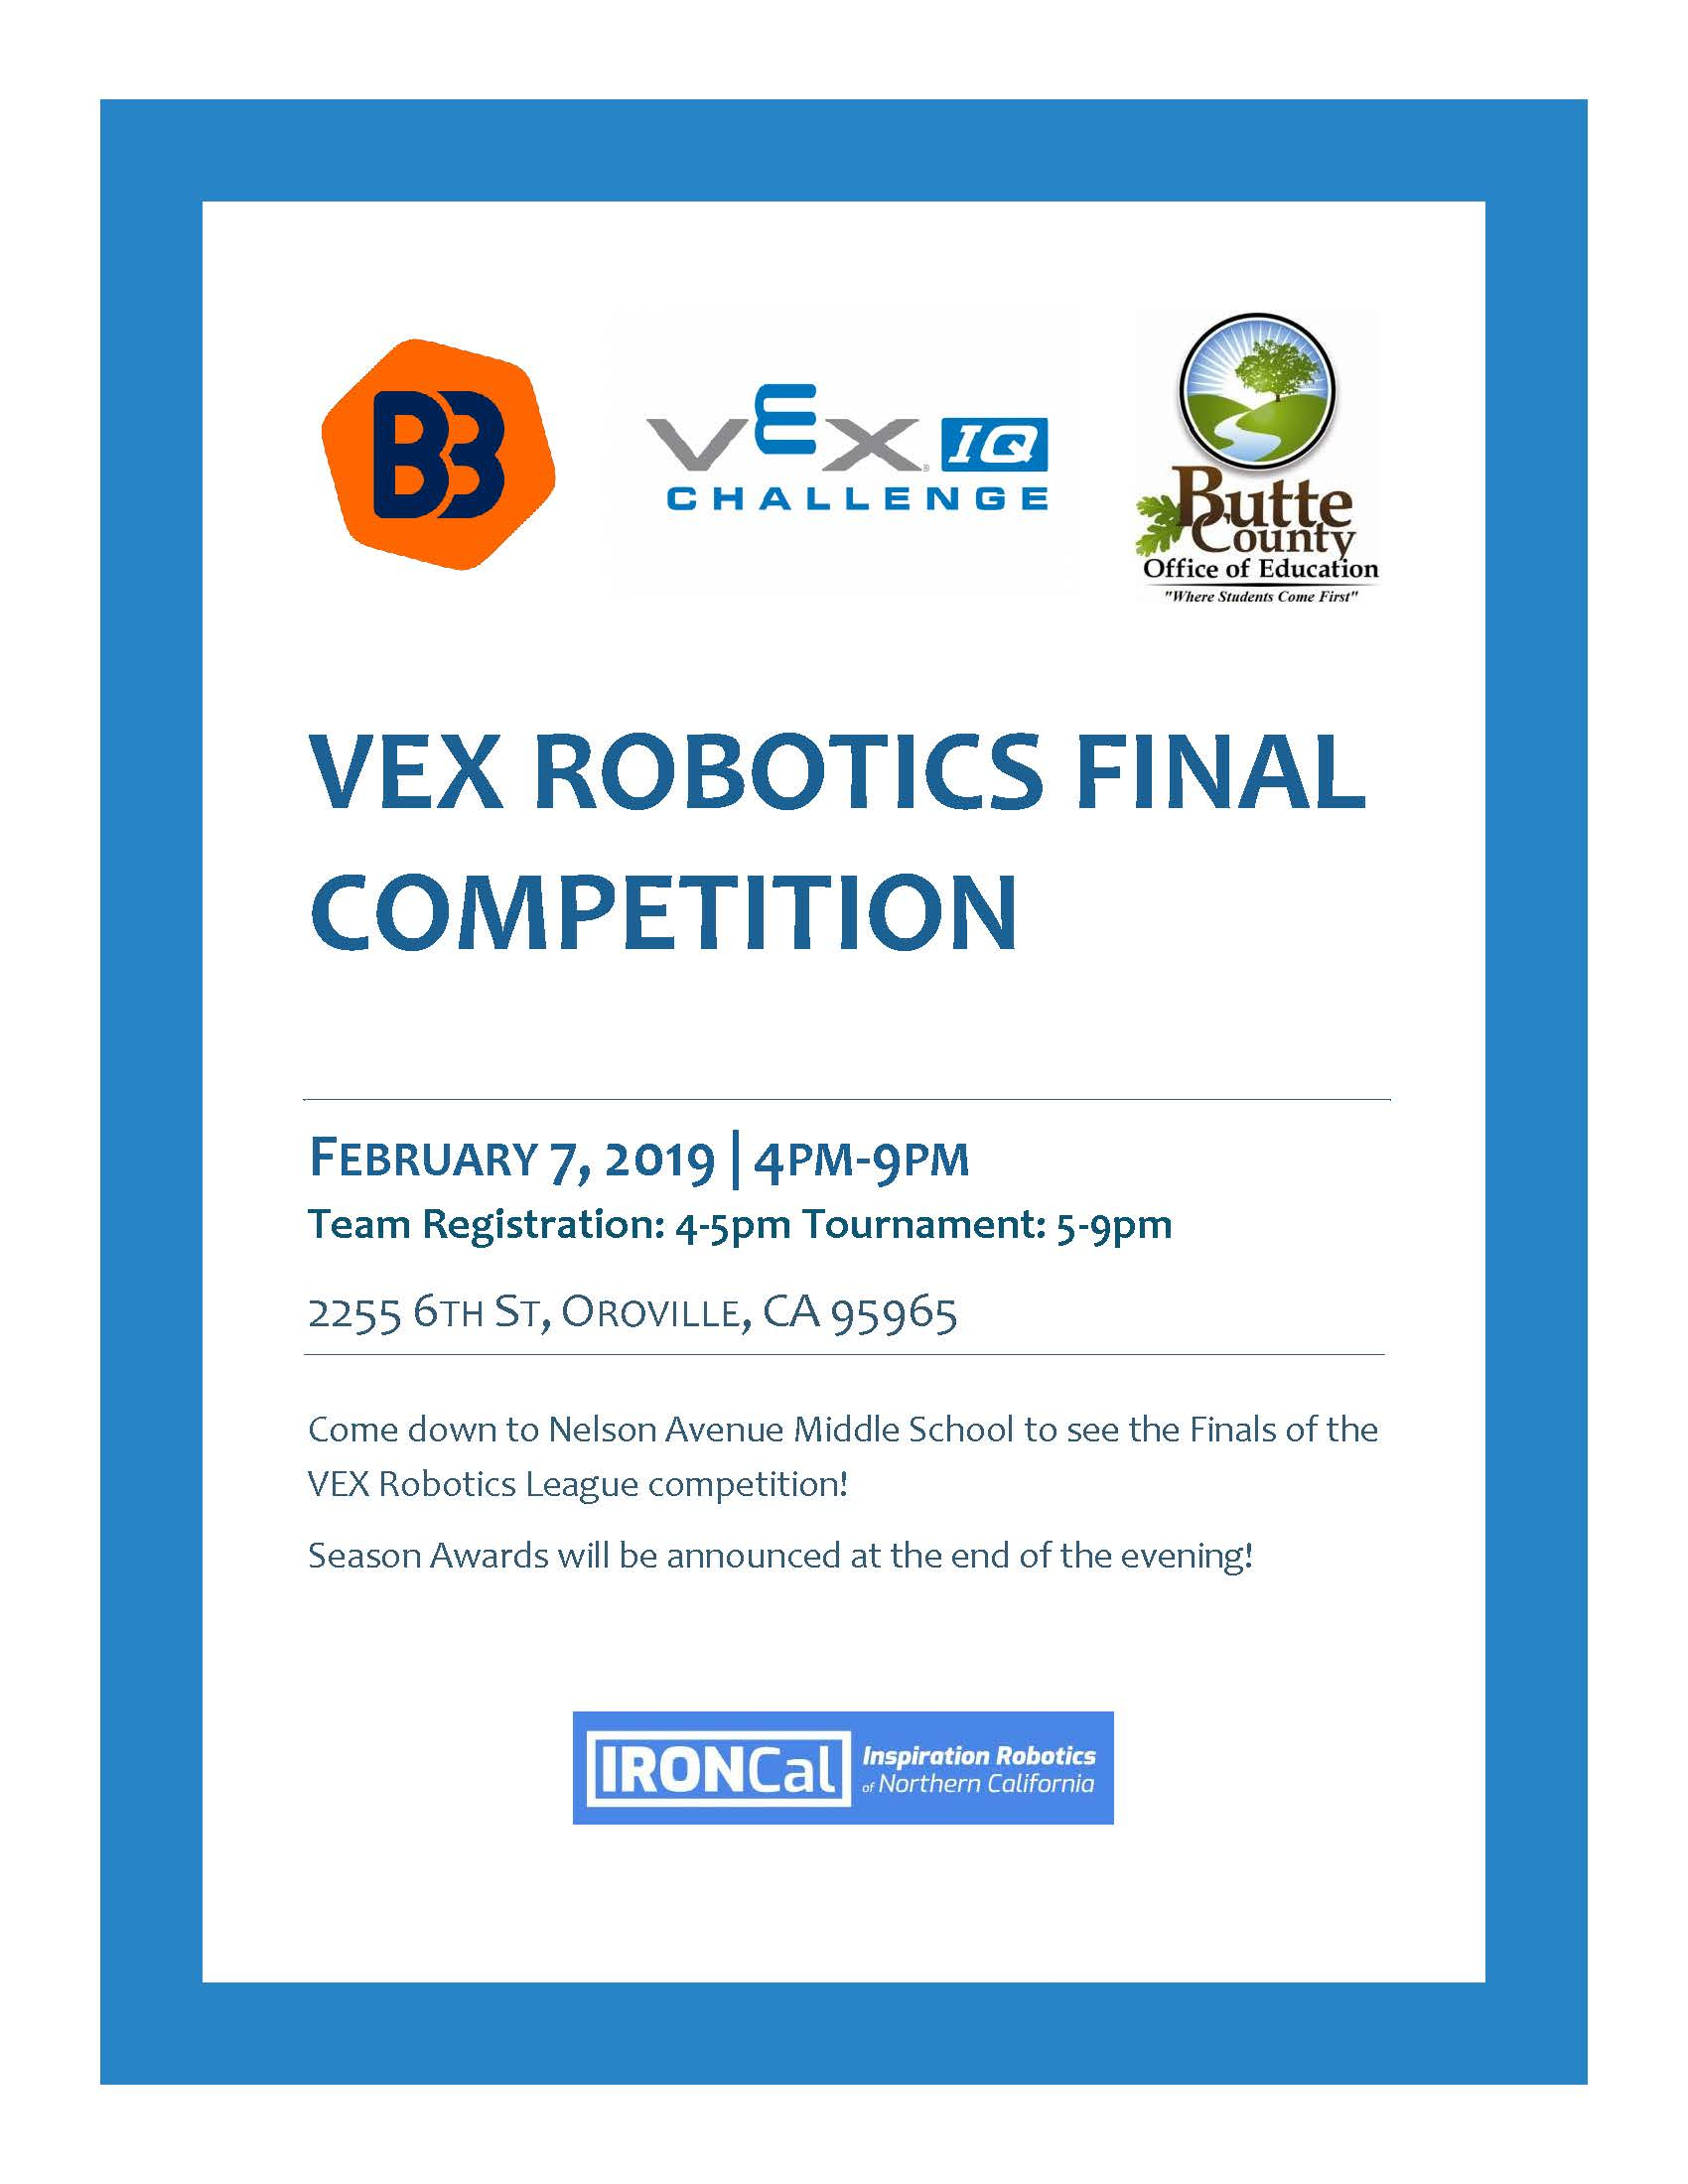 VEX Robotics Final Competition Flyer